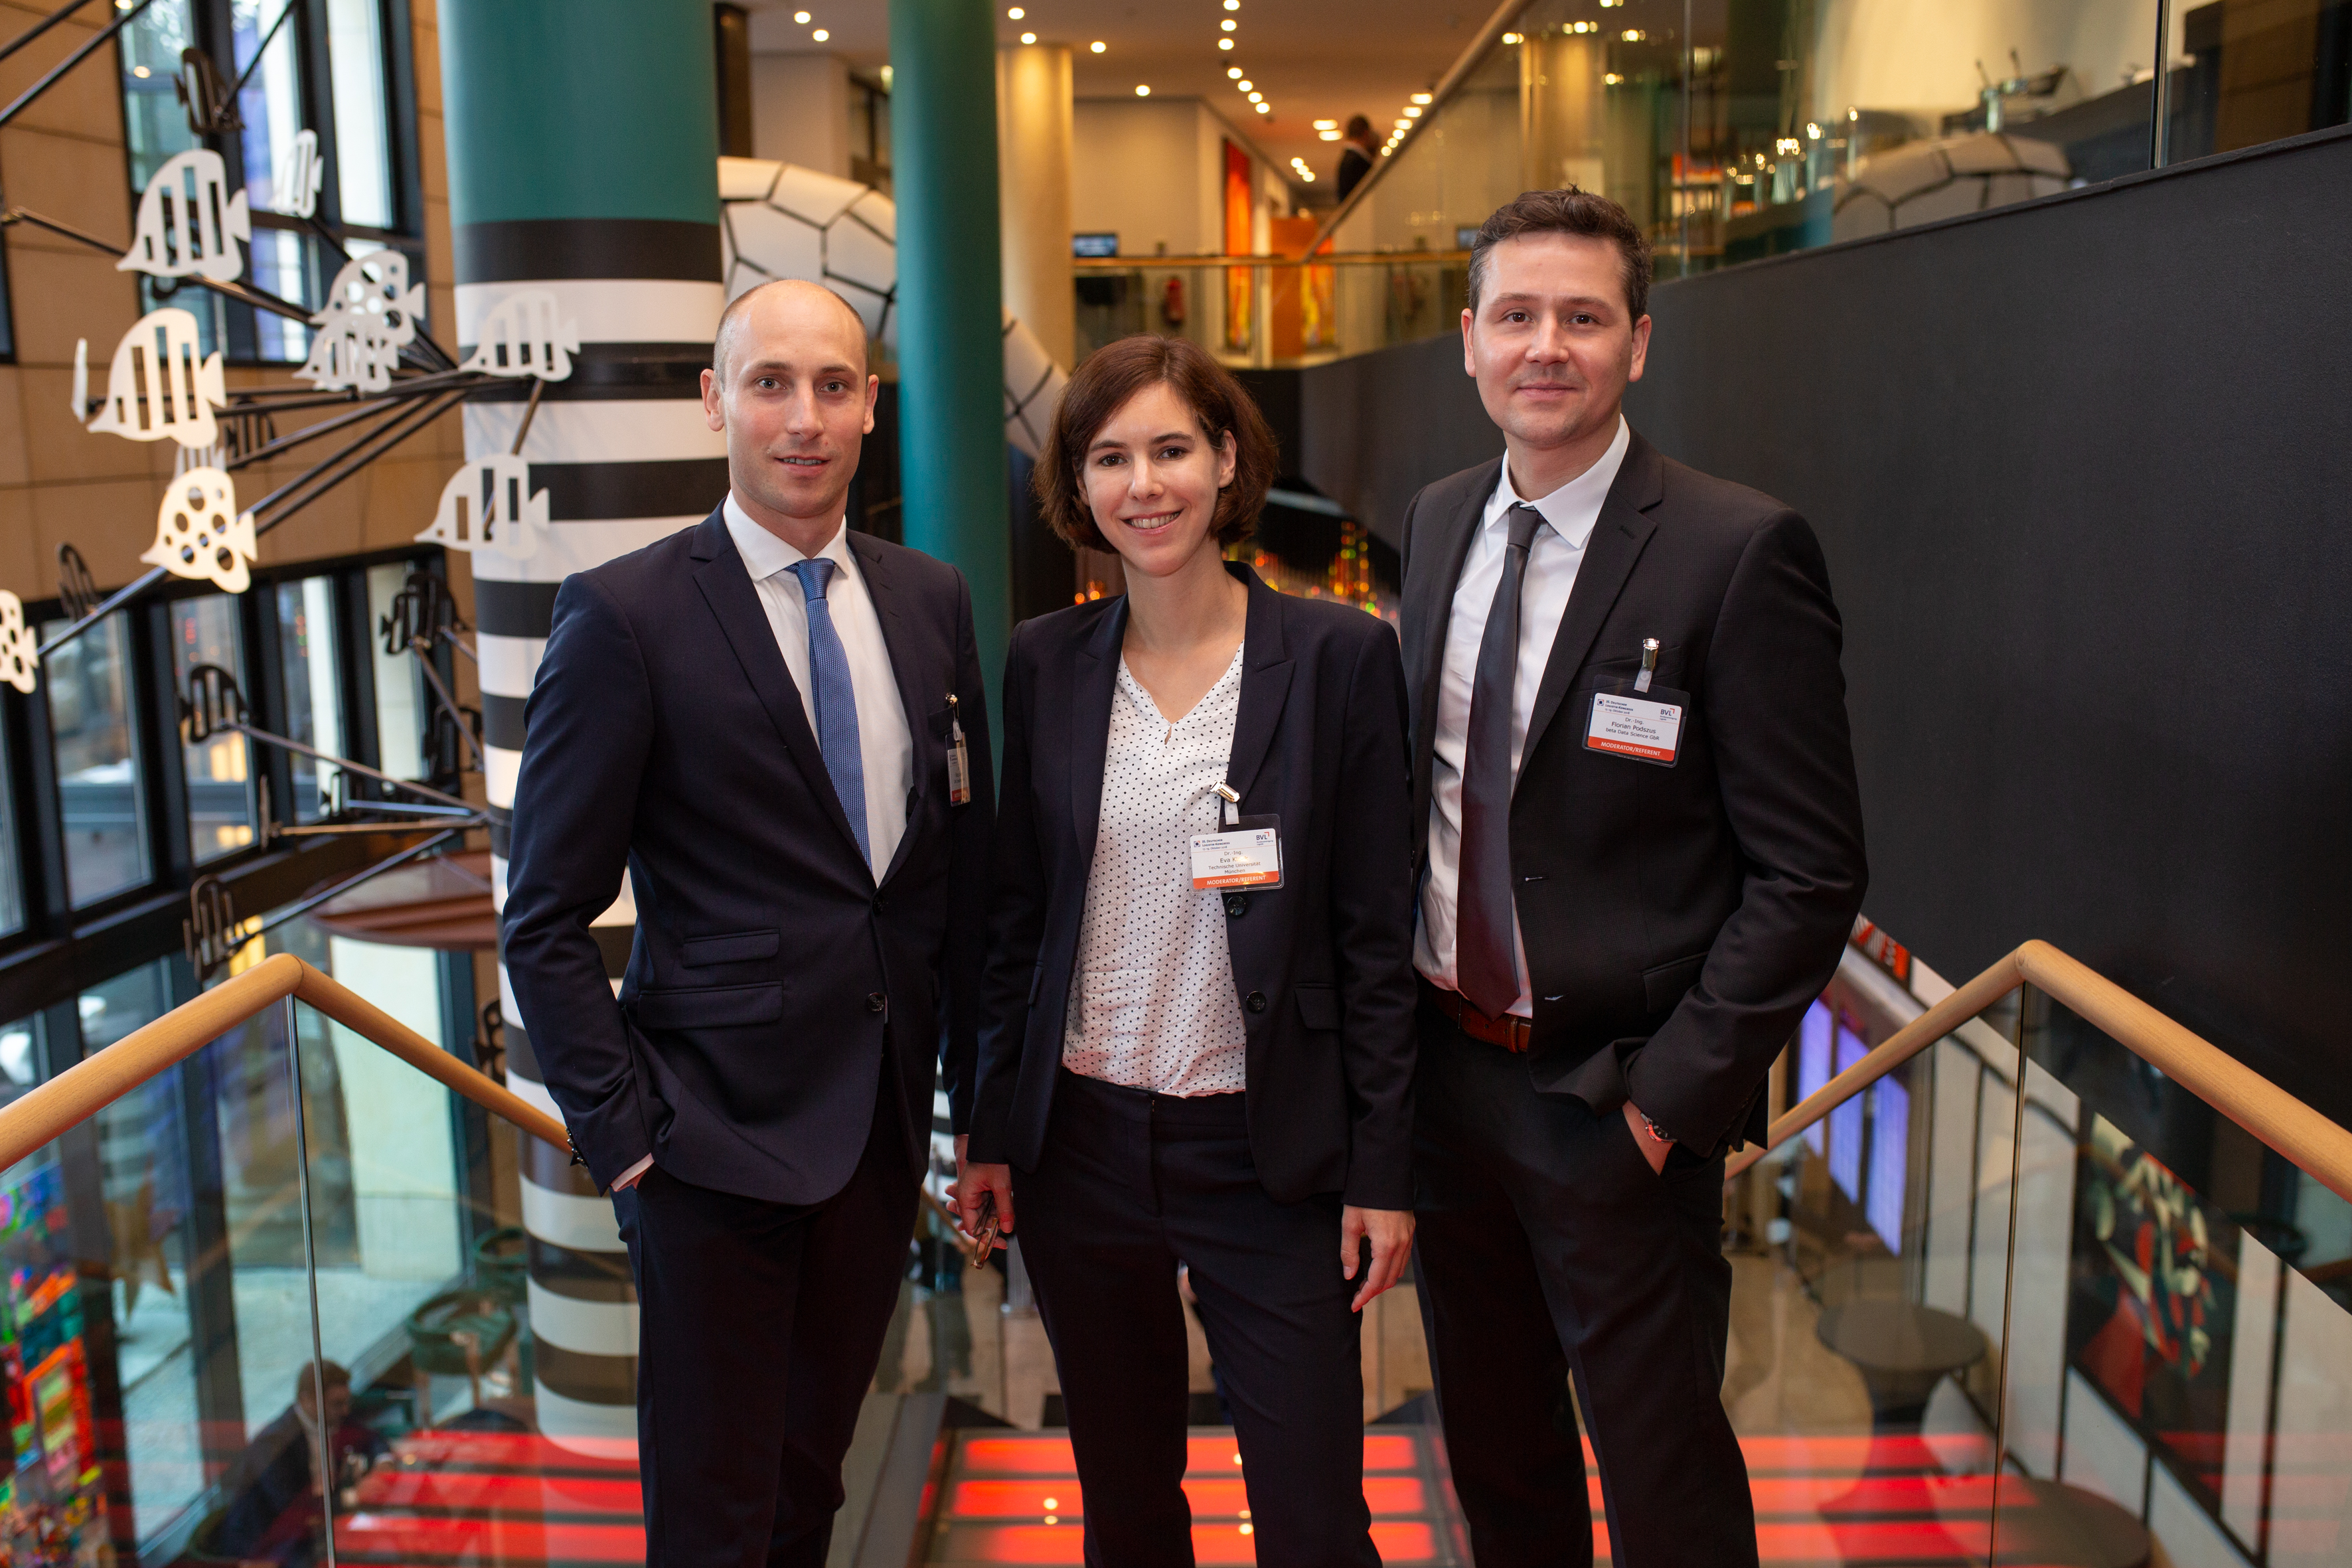 Dr.-Ing. Eva Klenk came out on top in the final round of the Science Award for SCM, ahead of her colleagues Dr. Falco Jaekel (left) and Dr.-Ing. Florian Podszus.